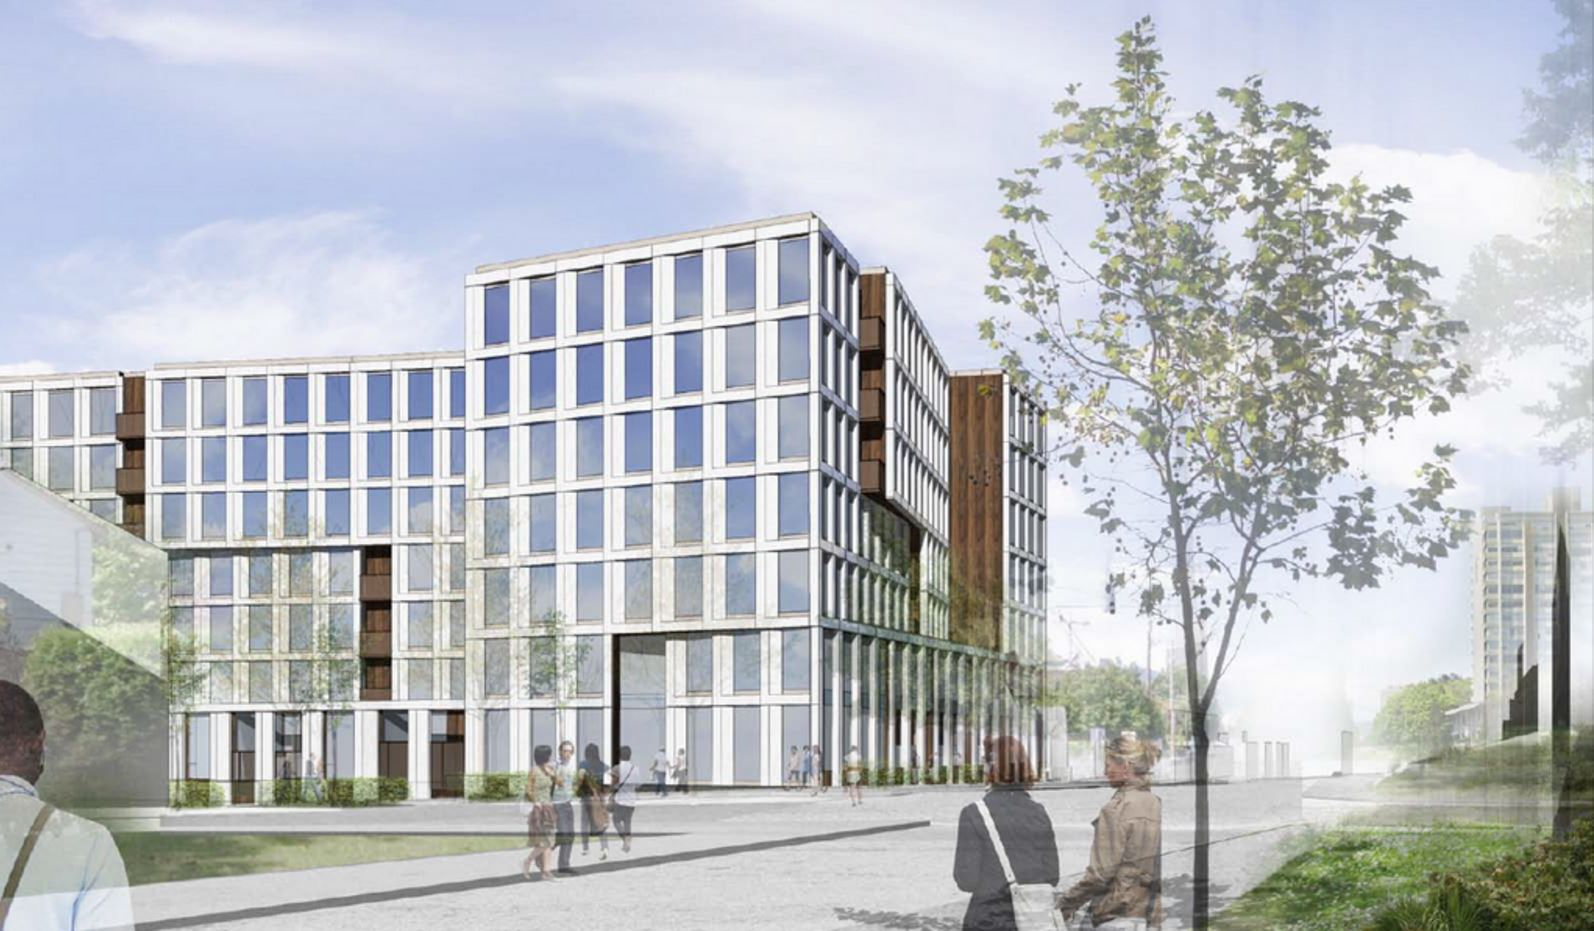 Rendering of new apartment building at NE 21st and Multnomah